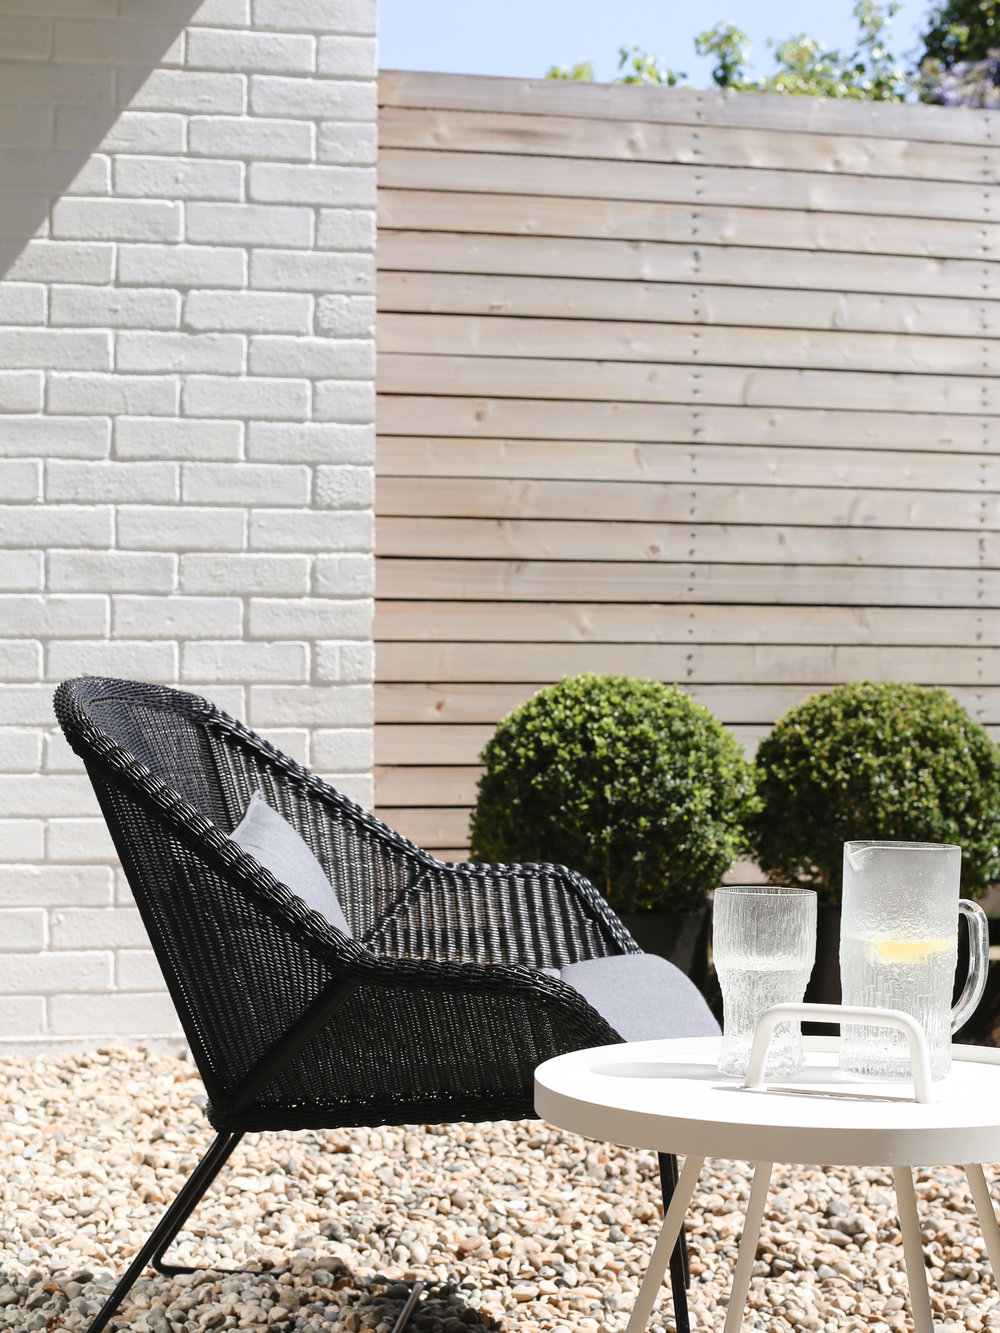 Cane-line Danish garden furniture | Design Hunter